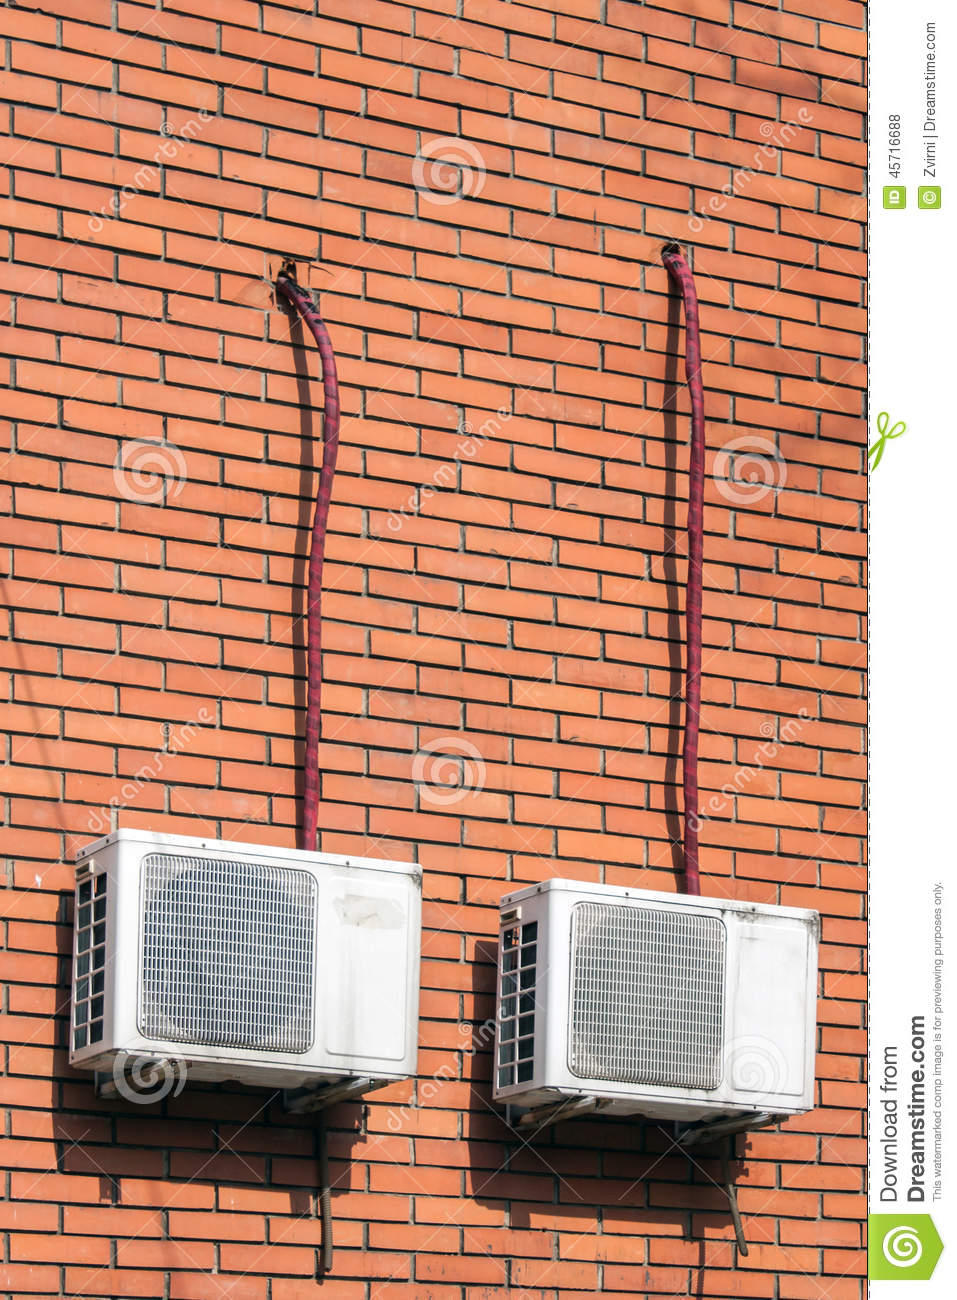 Old air conditioning units